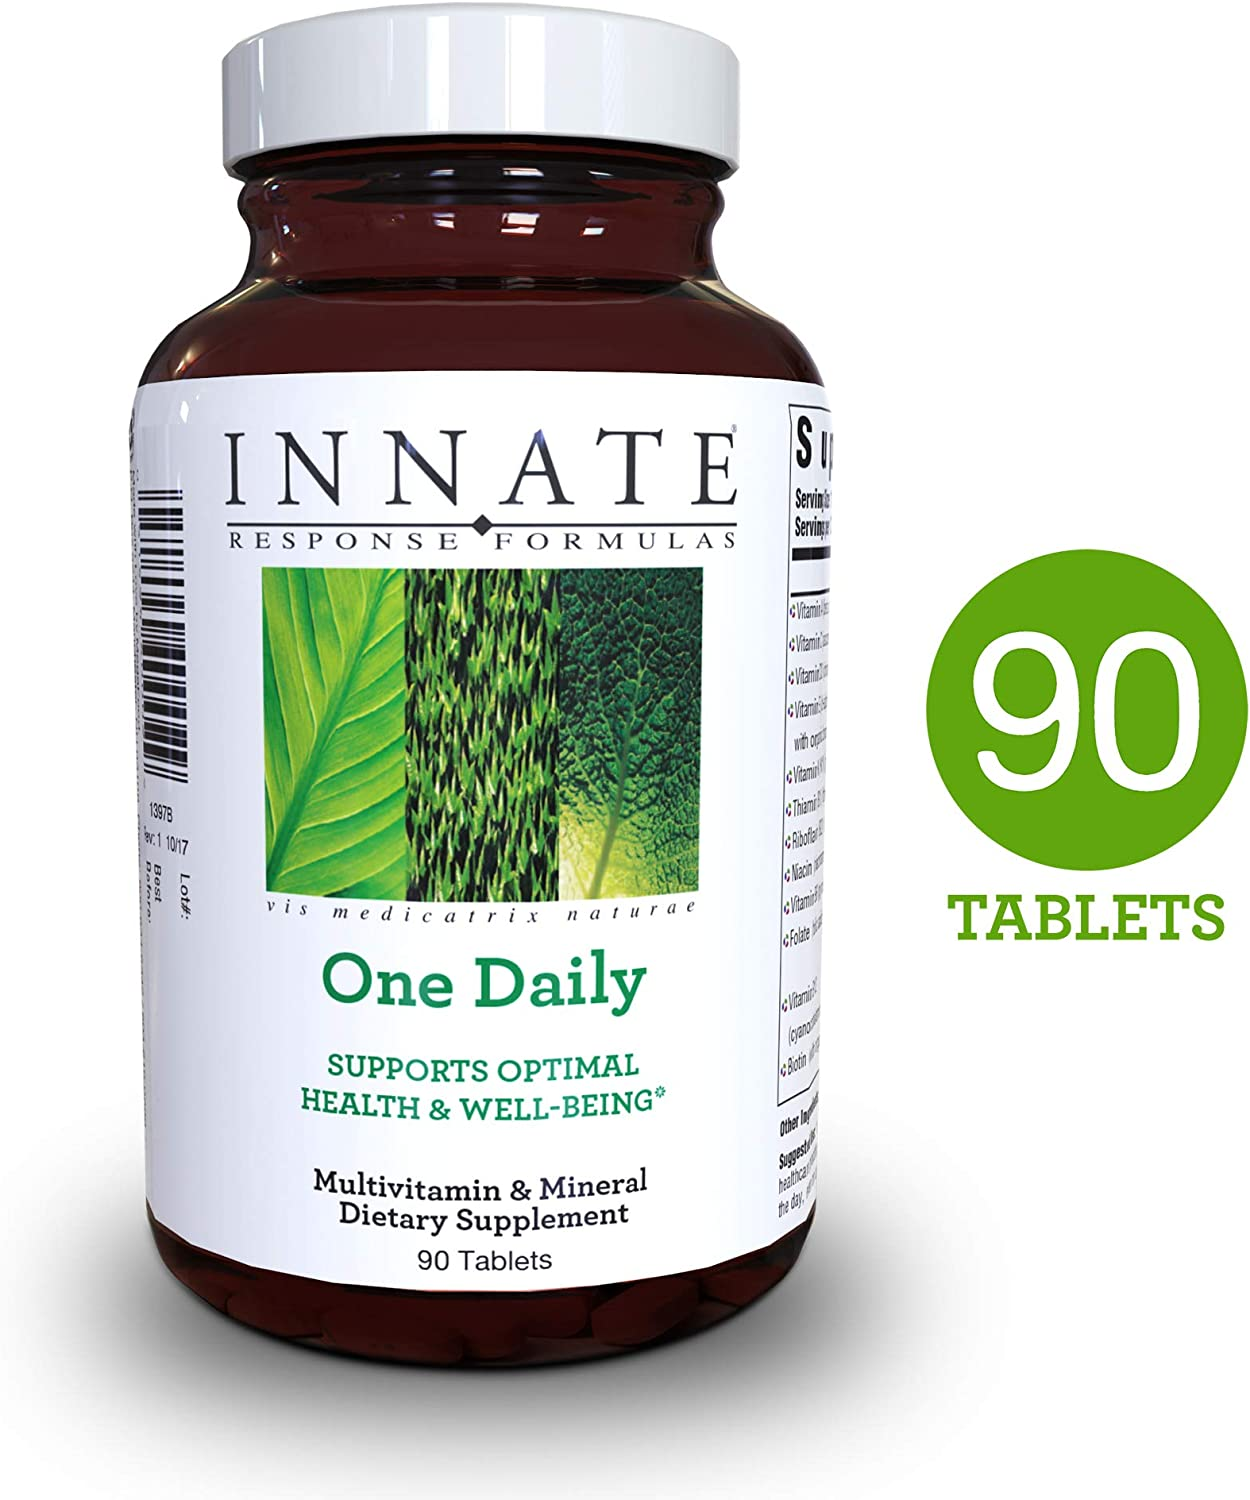 INNATE Response Formulas – One Daily, Herb Free Multivitamin in One Convenient Tablet, 90 Tablets